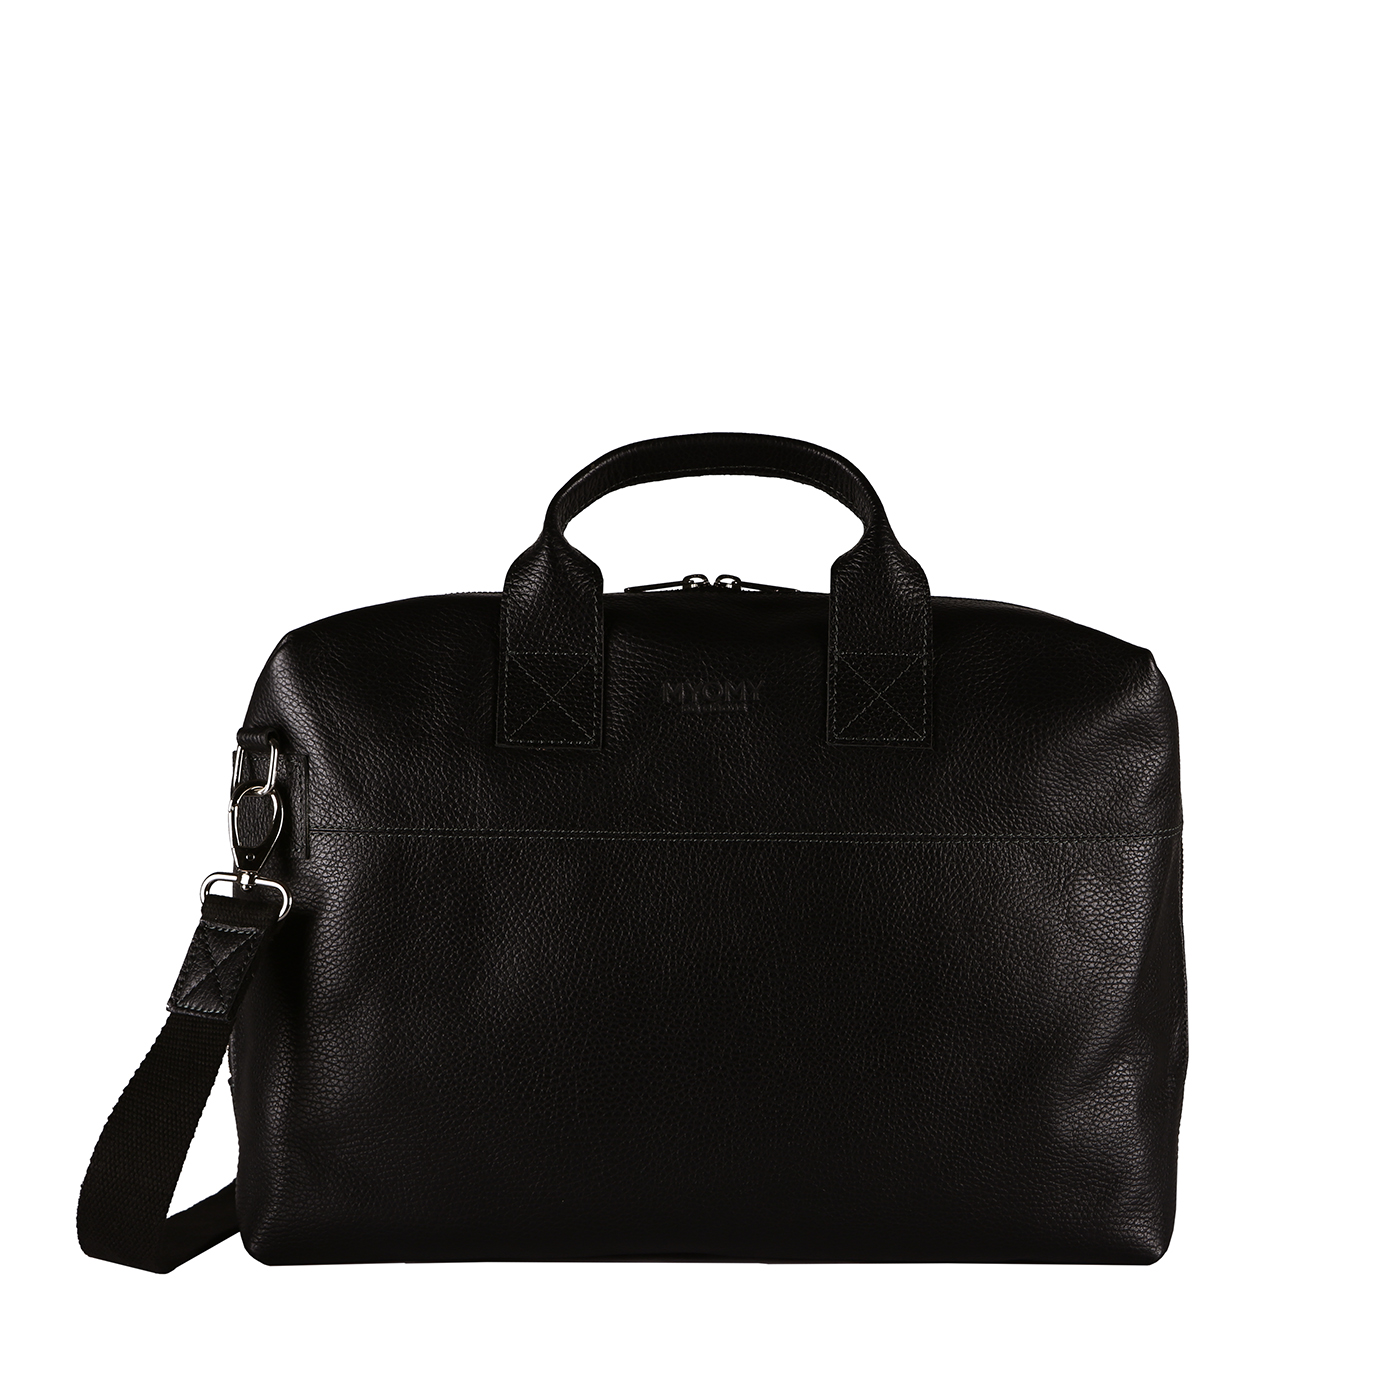 MY PHILIP BAG Business – rambler black